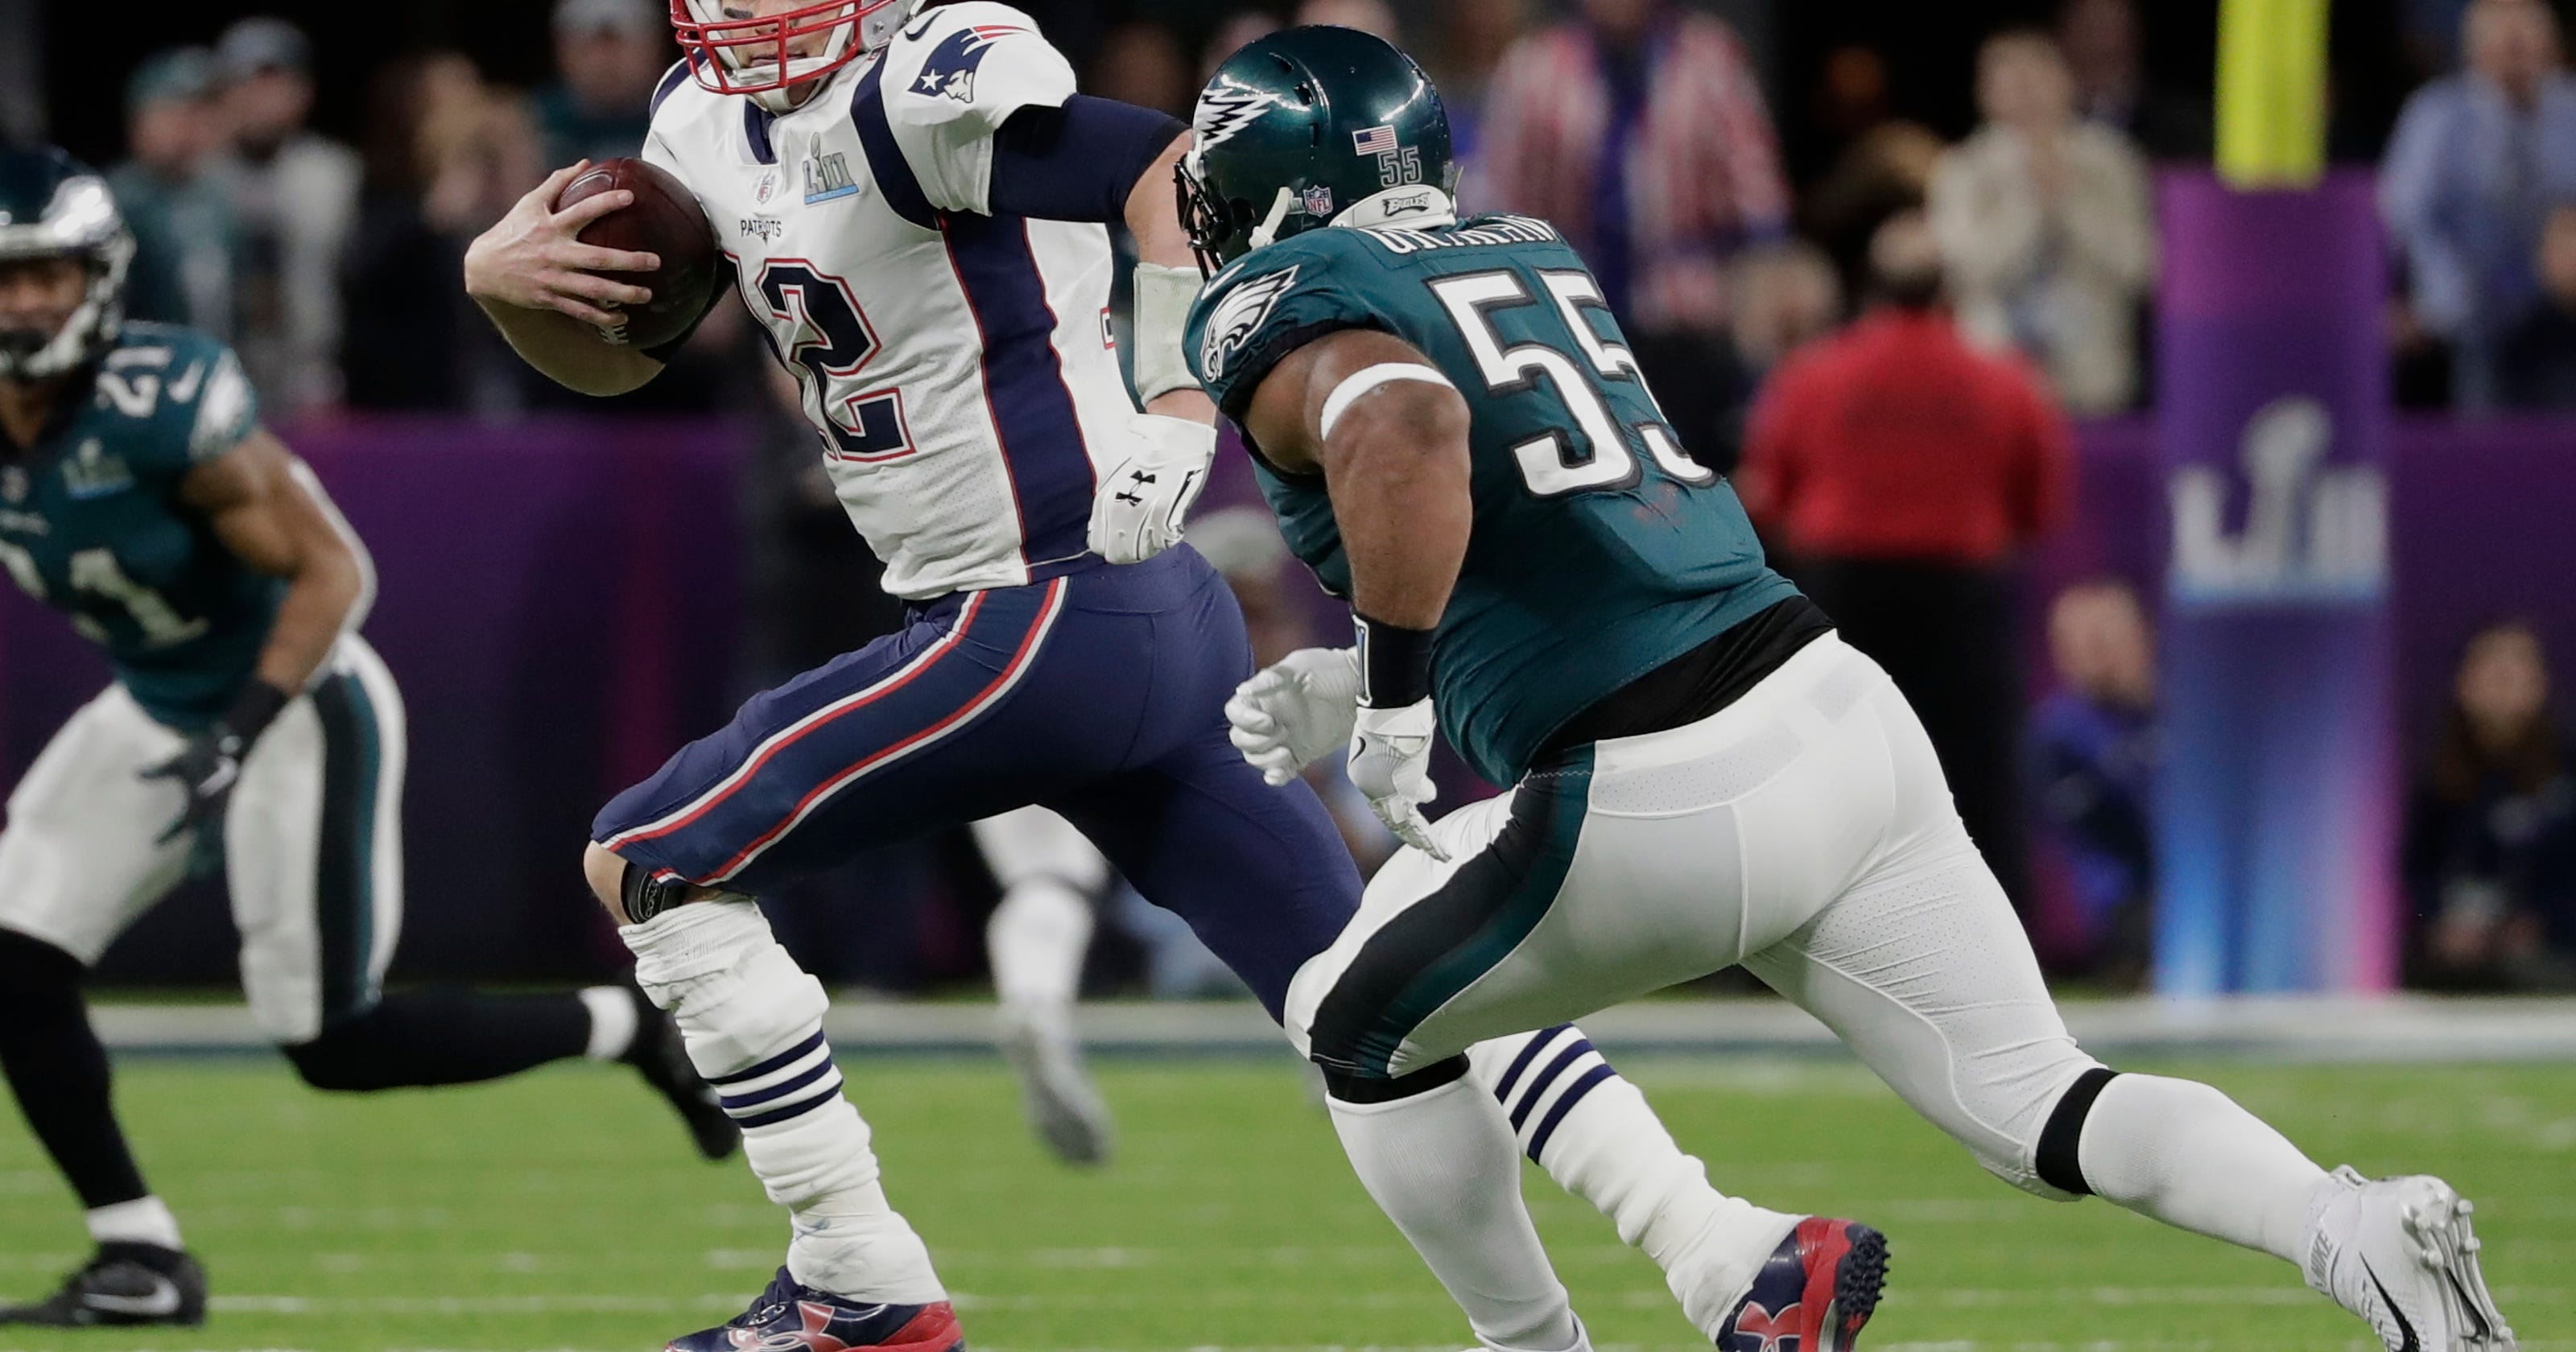 b60011be1ad Aggressive playcalling helps Eagles capture first Super Bowl